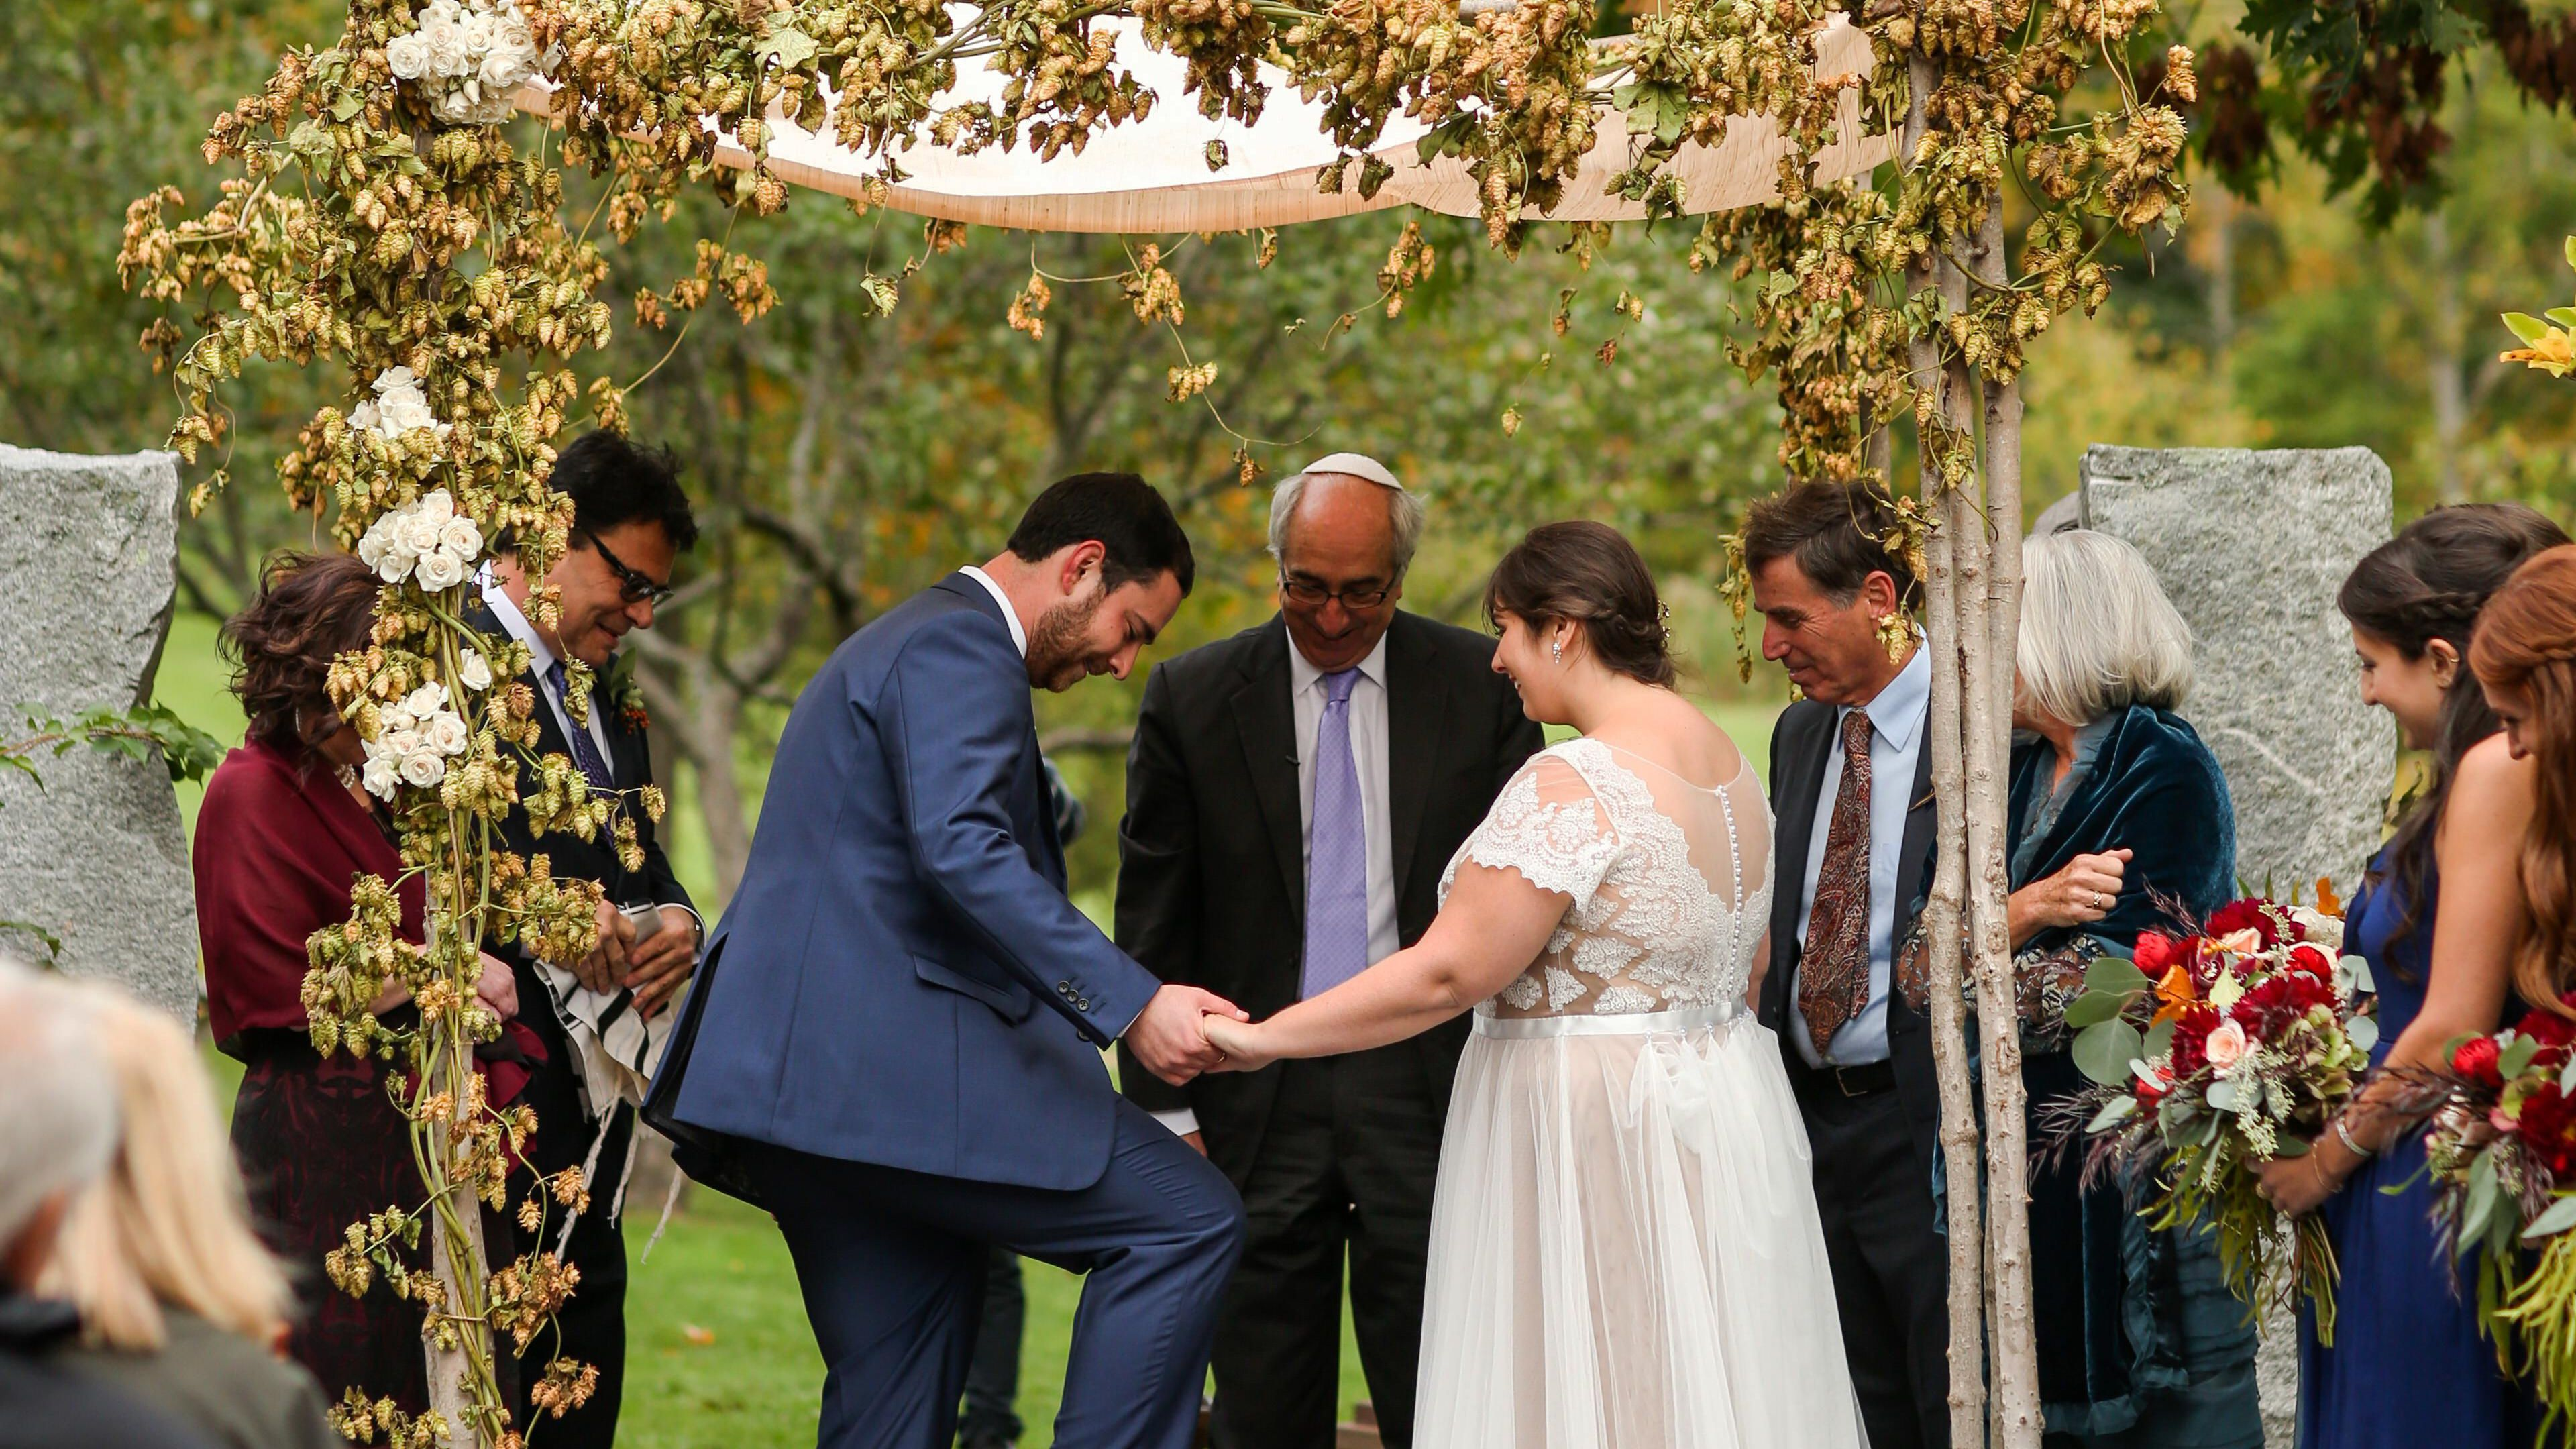 This Custom Is a Staple of Traditional Jewish Wedding Ceremonies.